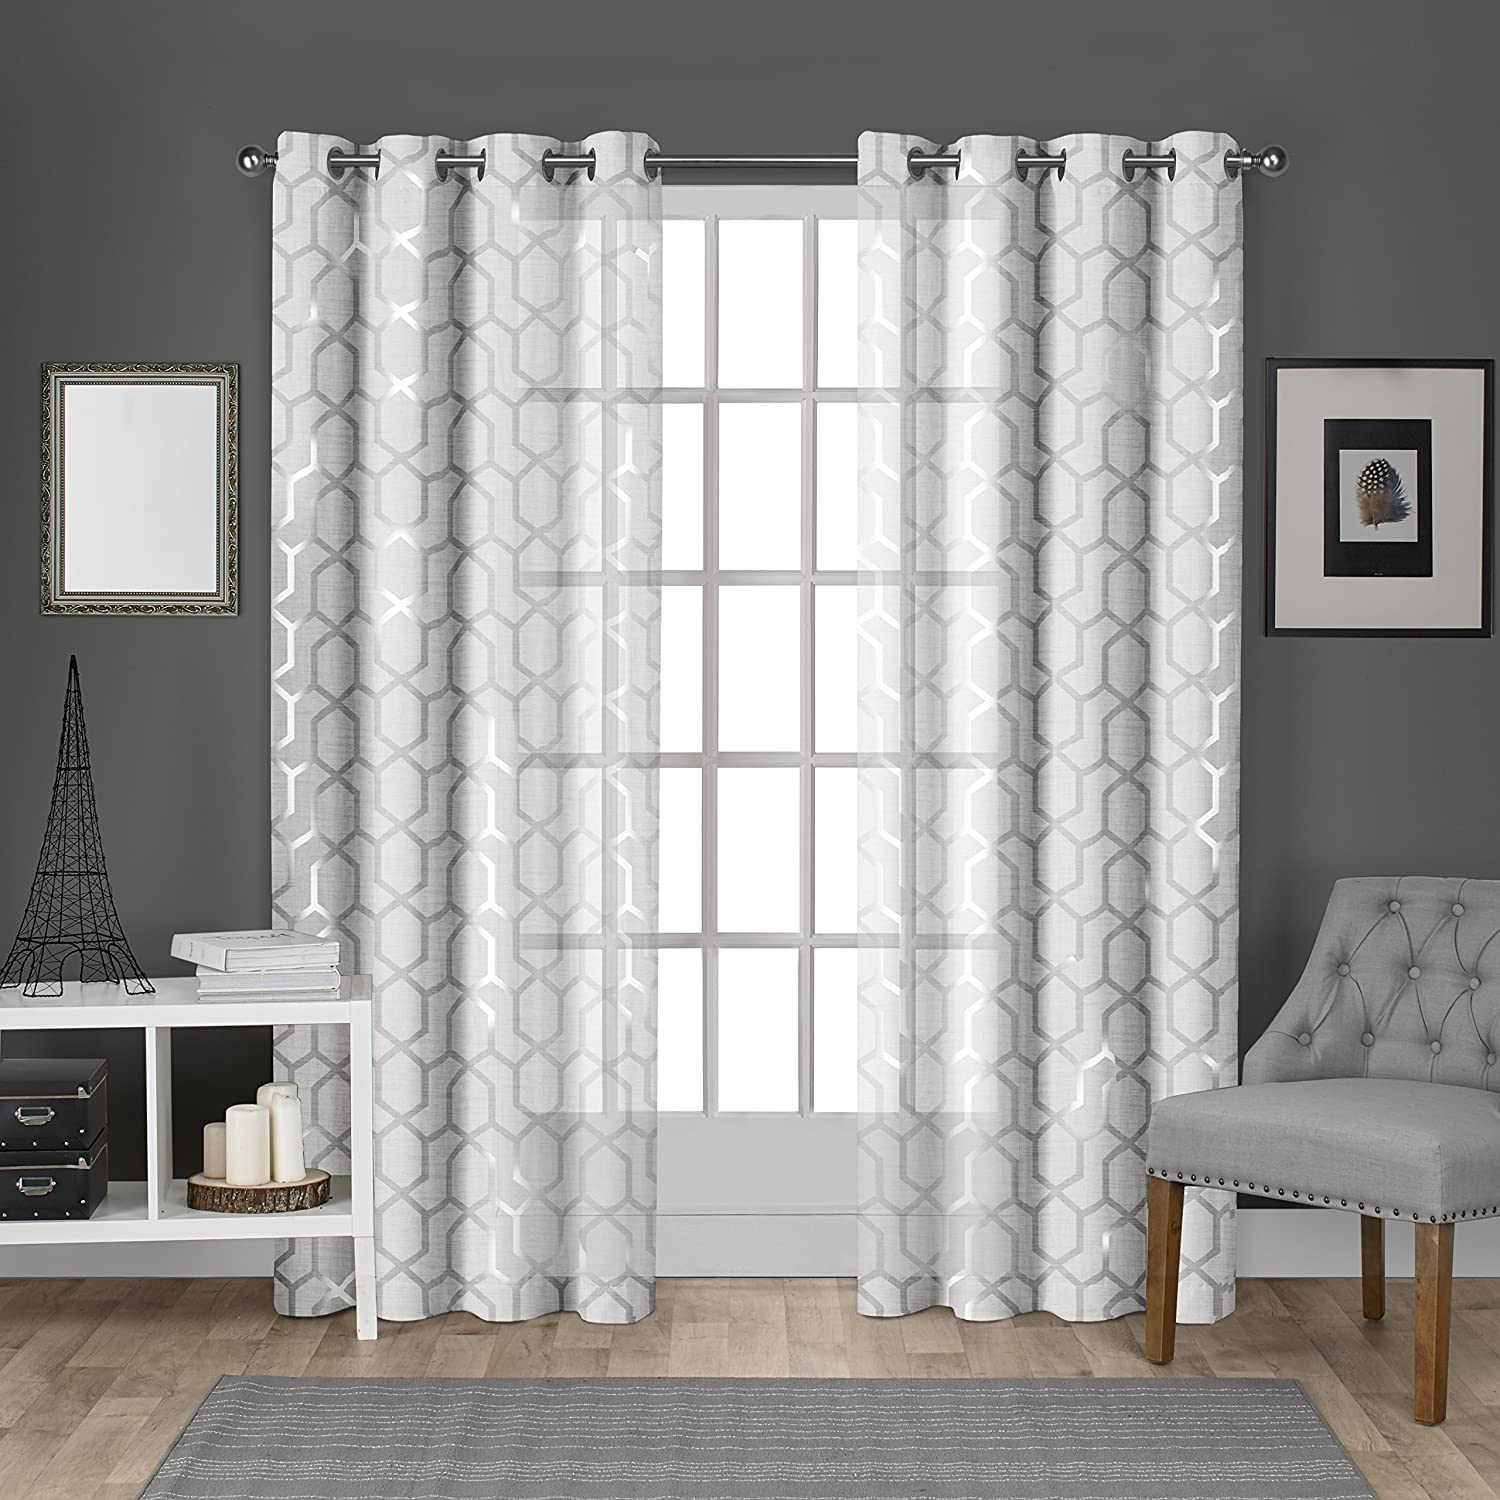 Exclusive Home Curtains Panza Metallic Geometric Print Sheer Grommet Top Curtain Panel Pair, 54x108, Winter Silver, 2 Piece